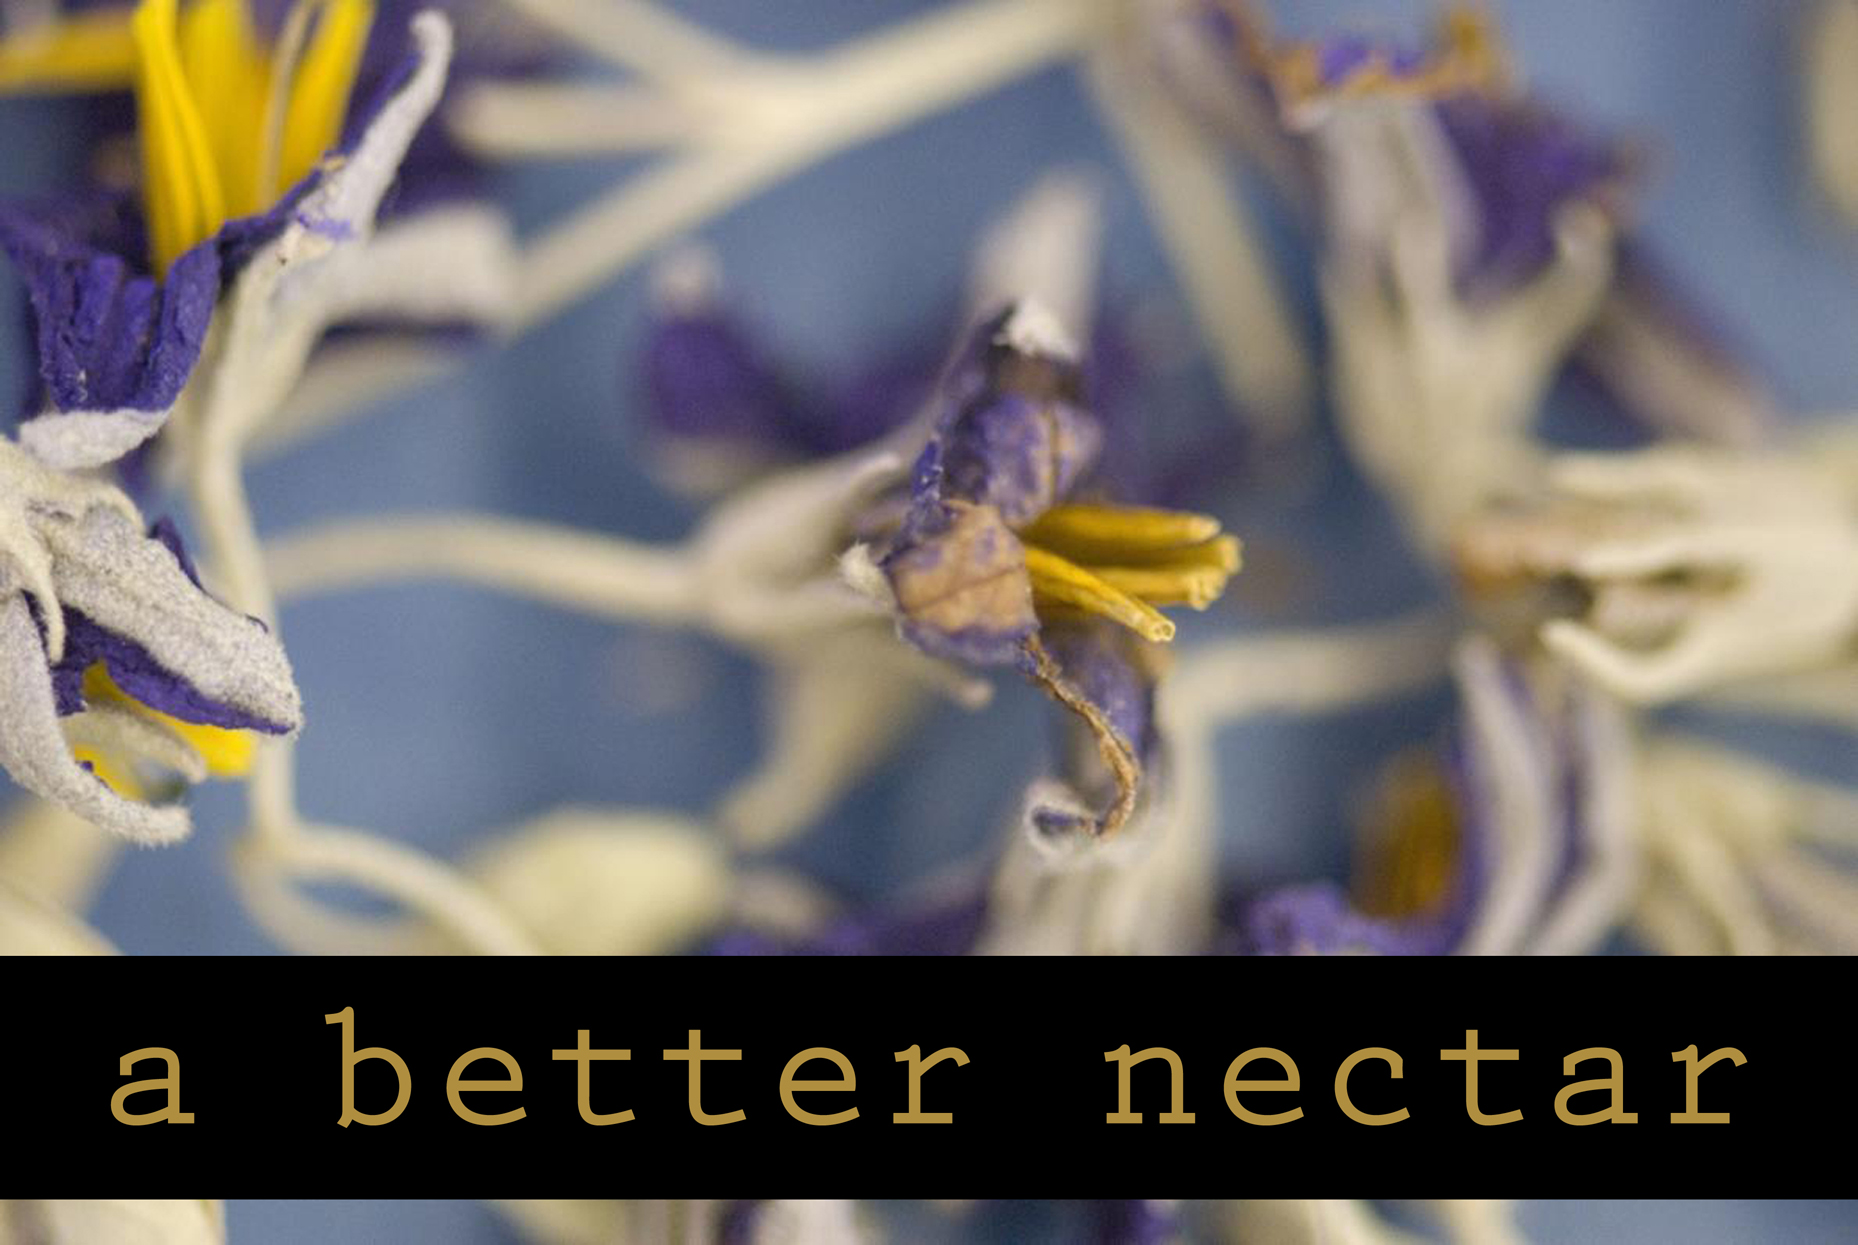 a better nectar exhibit